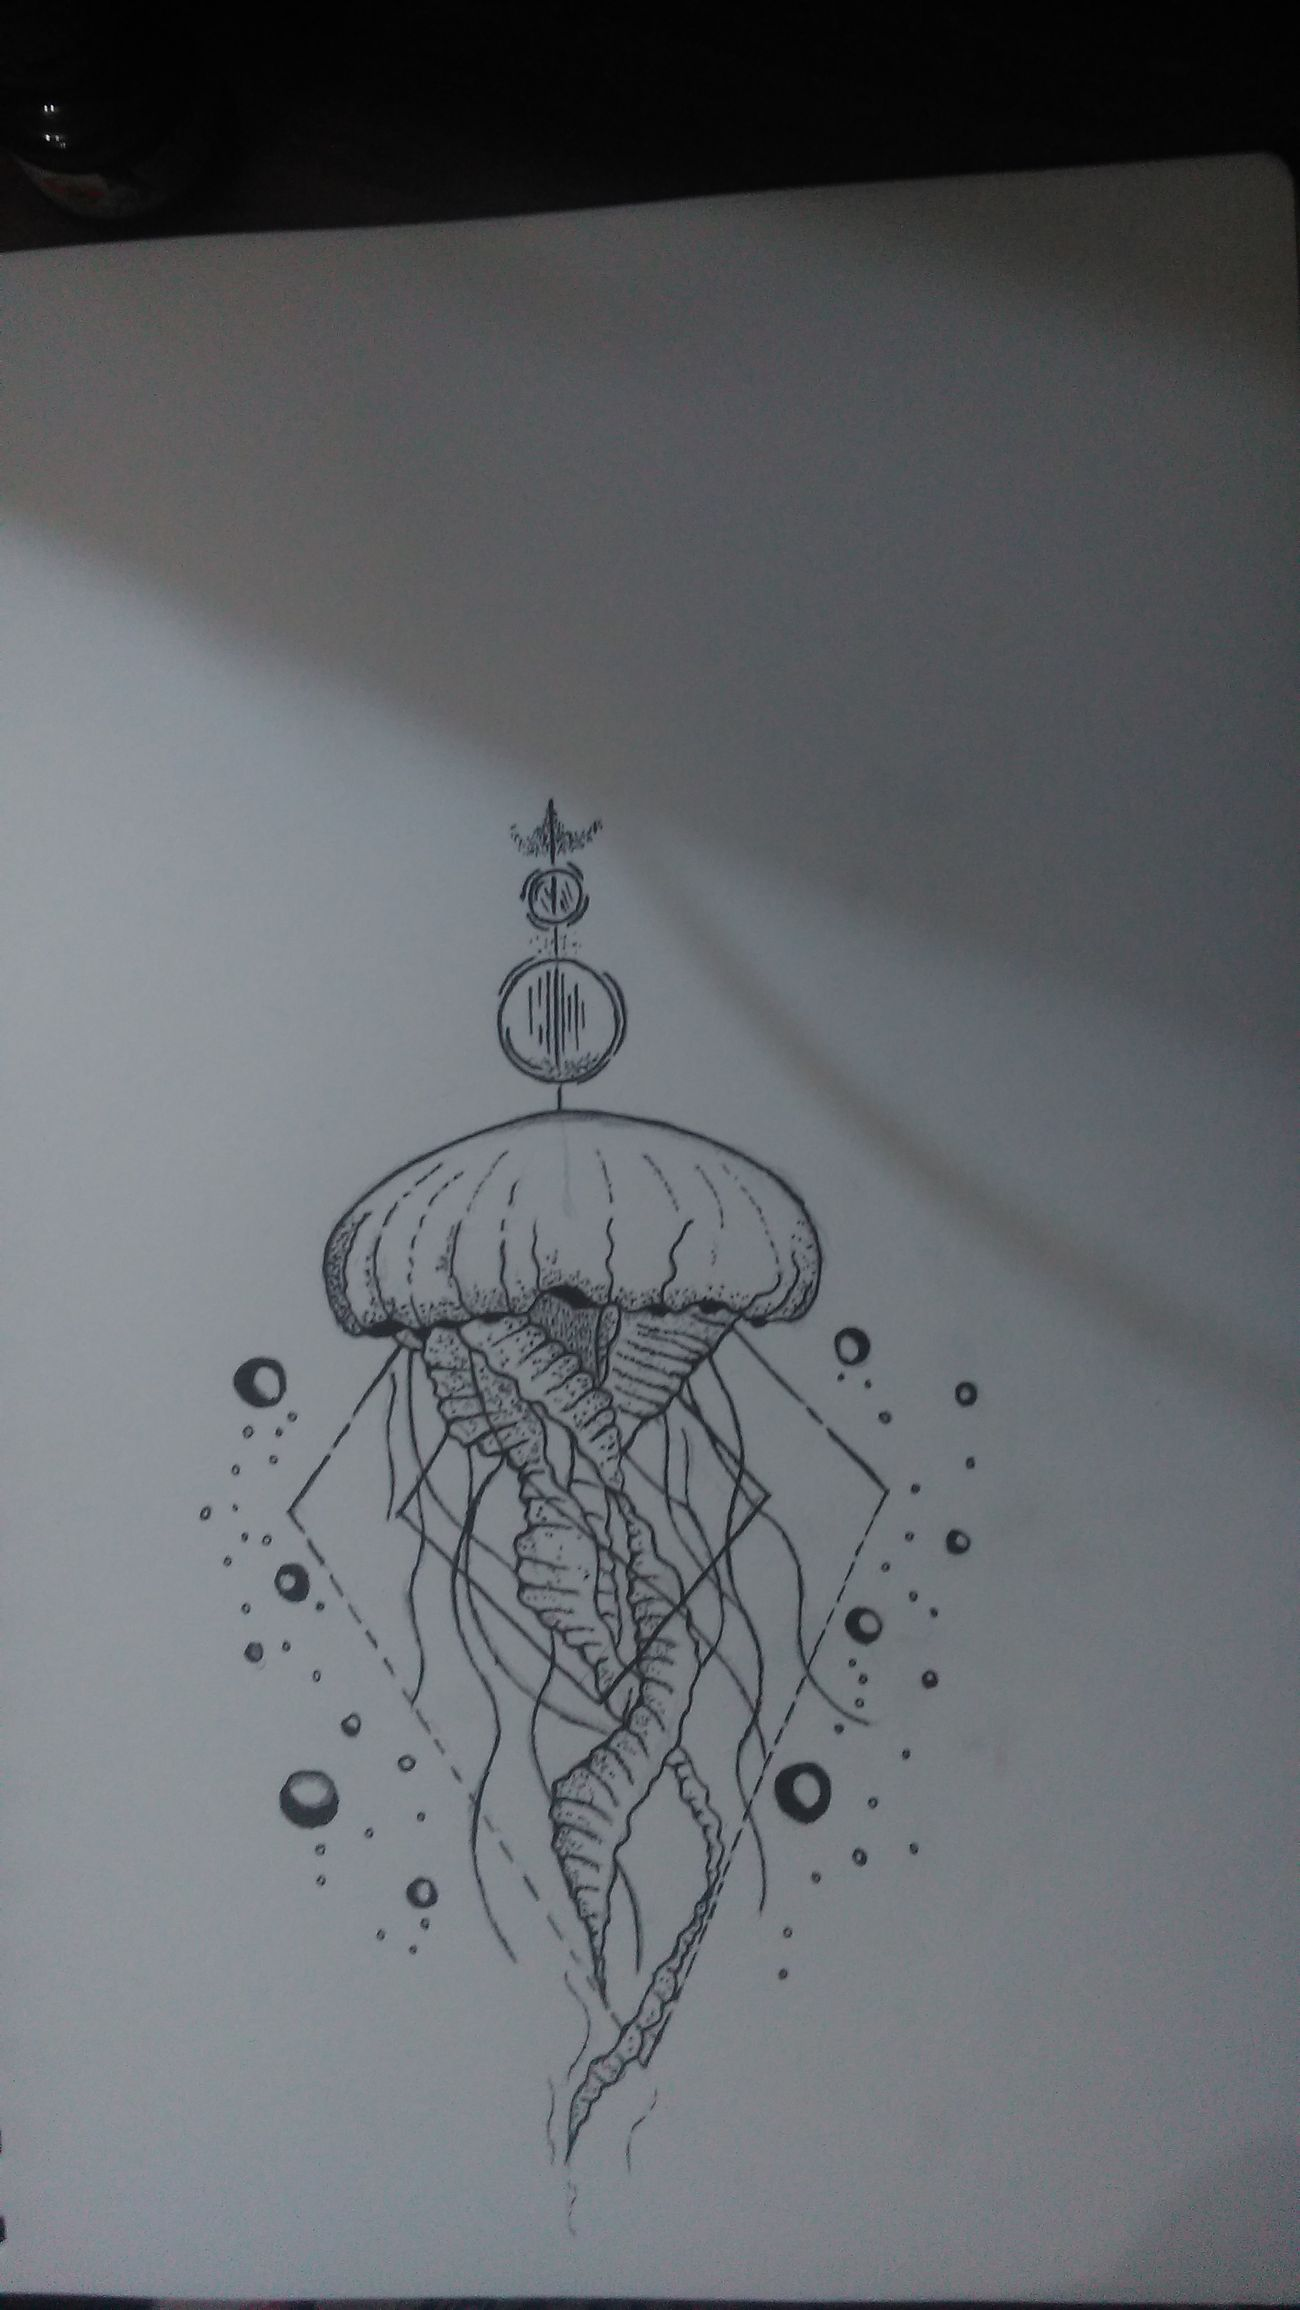 Jellyfish Paper Composition Hand Drawing ArtWork Art, Drawing, Creativity Drawing - Art Product Creativity Drawingwork Art Drawing Creativity Tattoo Sketch  Lines And Shapes